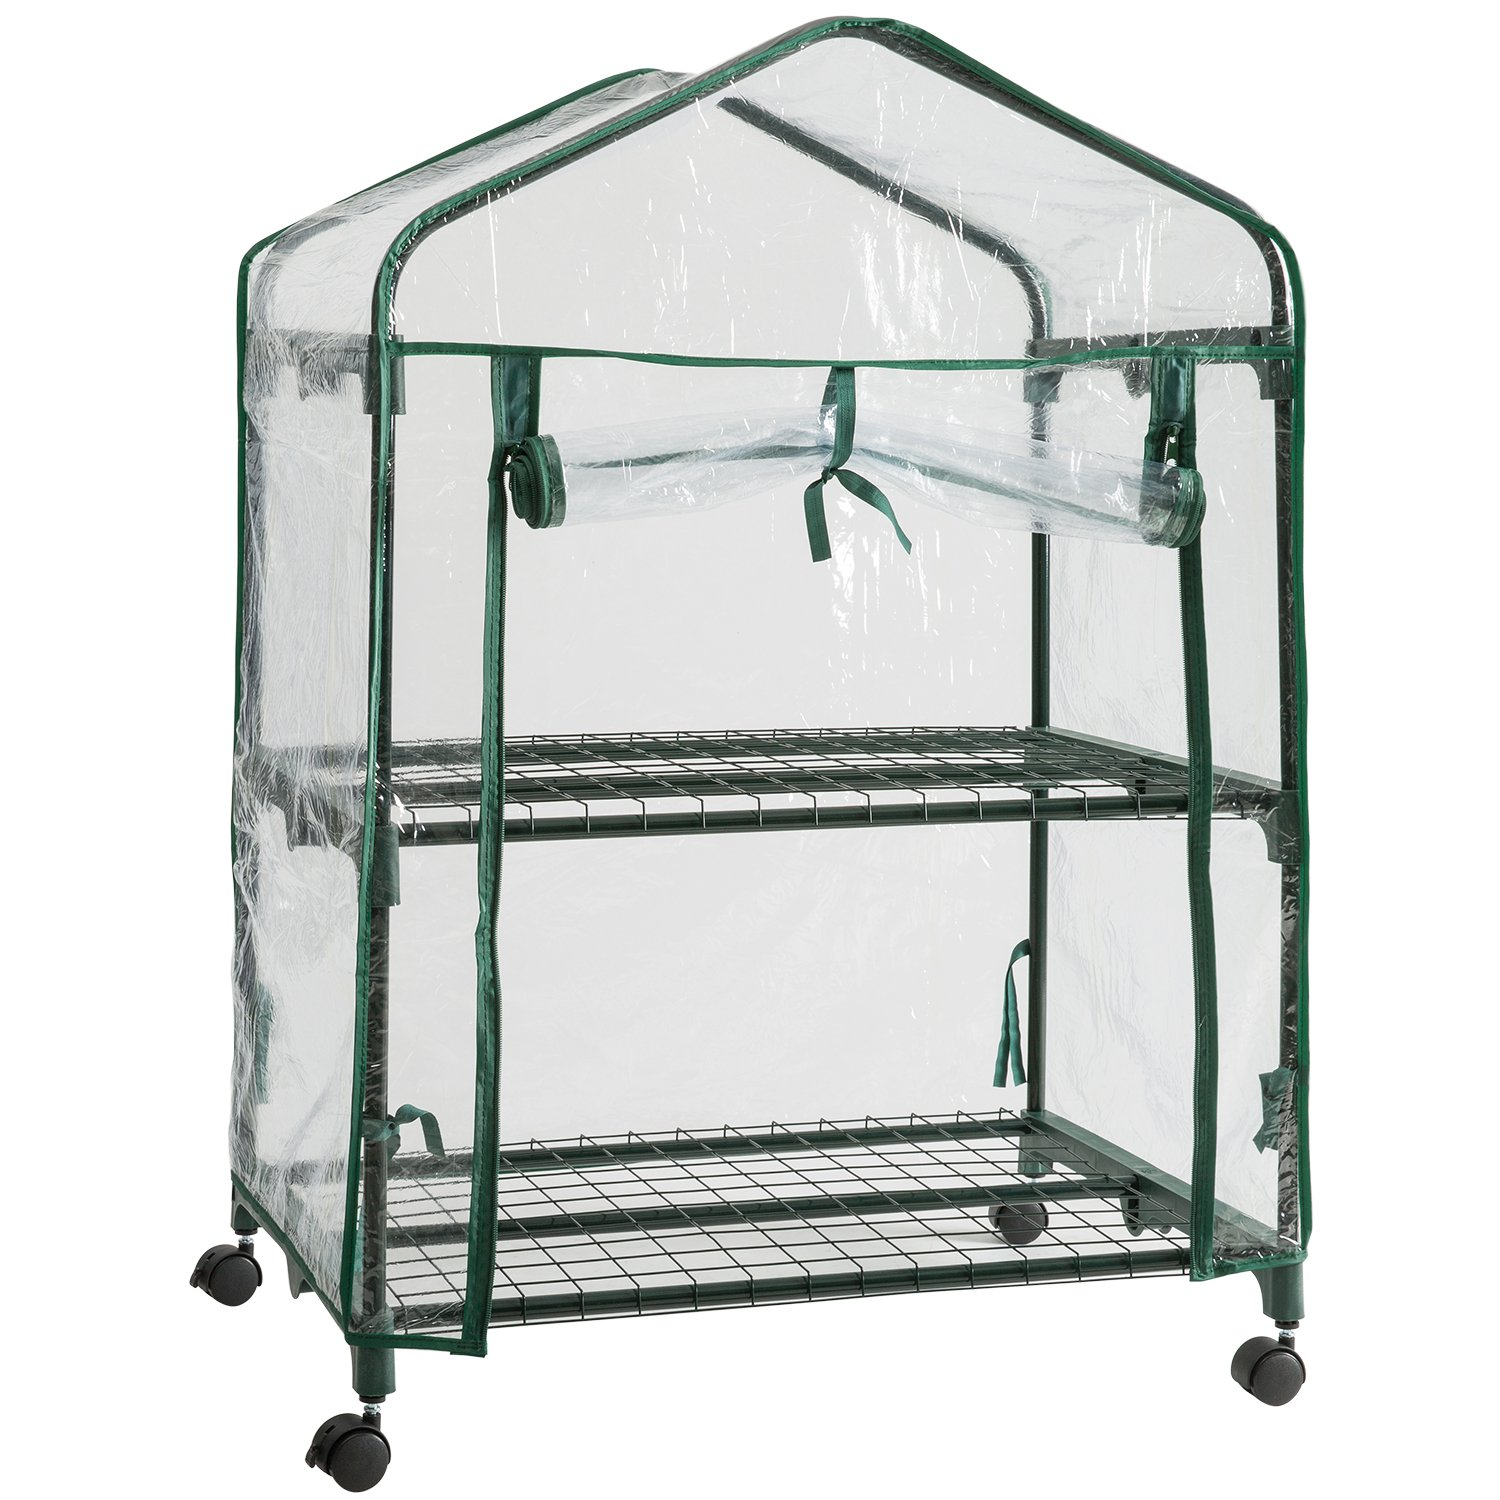 DOEWORKS 2 Tier Mini Portable Plant Greenhouse with Clear Cover, Indoor Outdoor Garden House with Casters, 26.8''x 19.1''x 39.4''